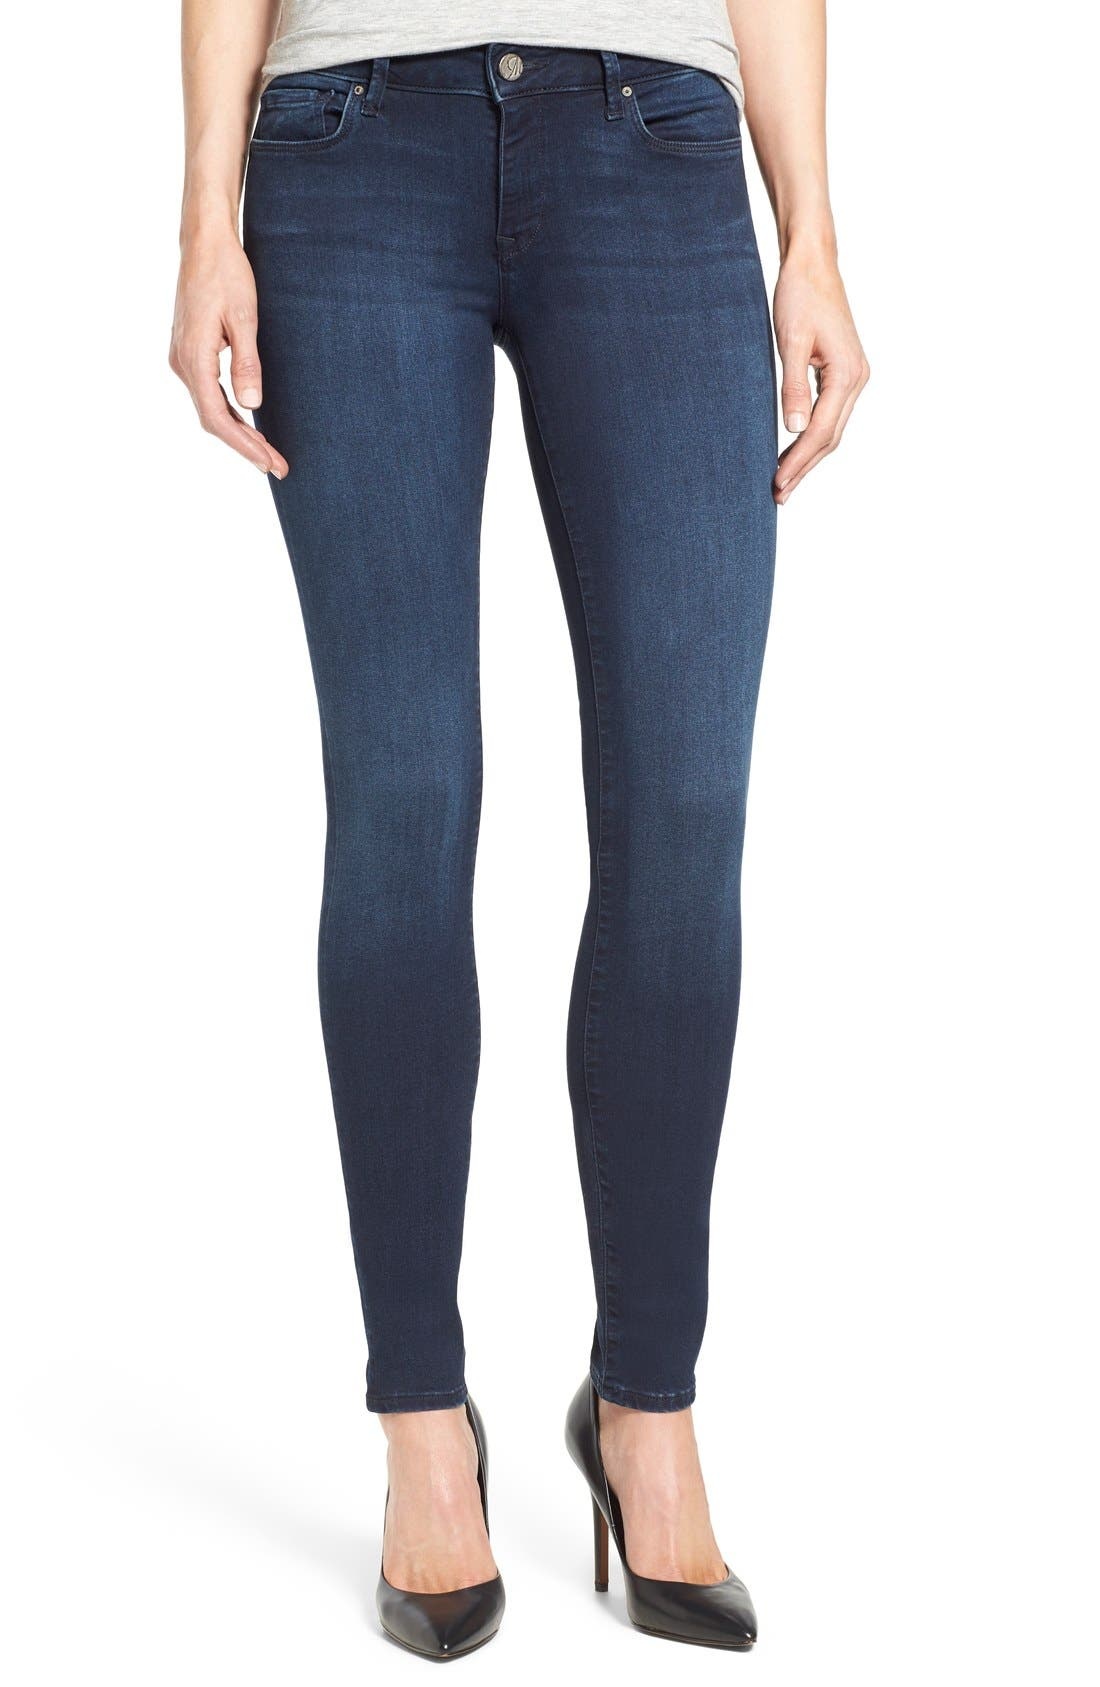 'Adriana' Stretch Skinny Jeans,                         Main,                         color, 401